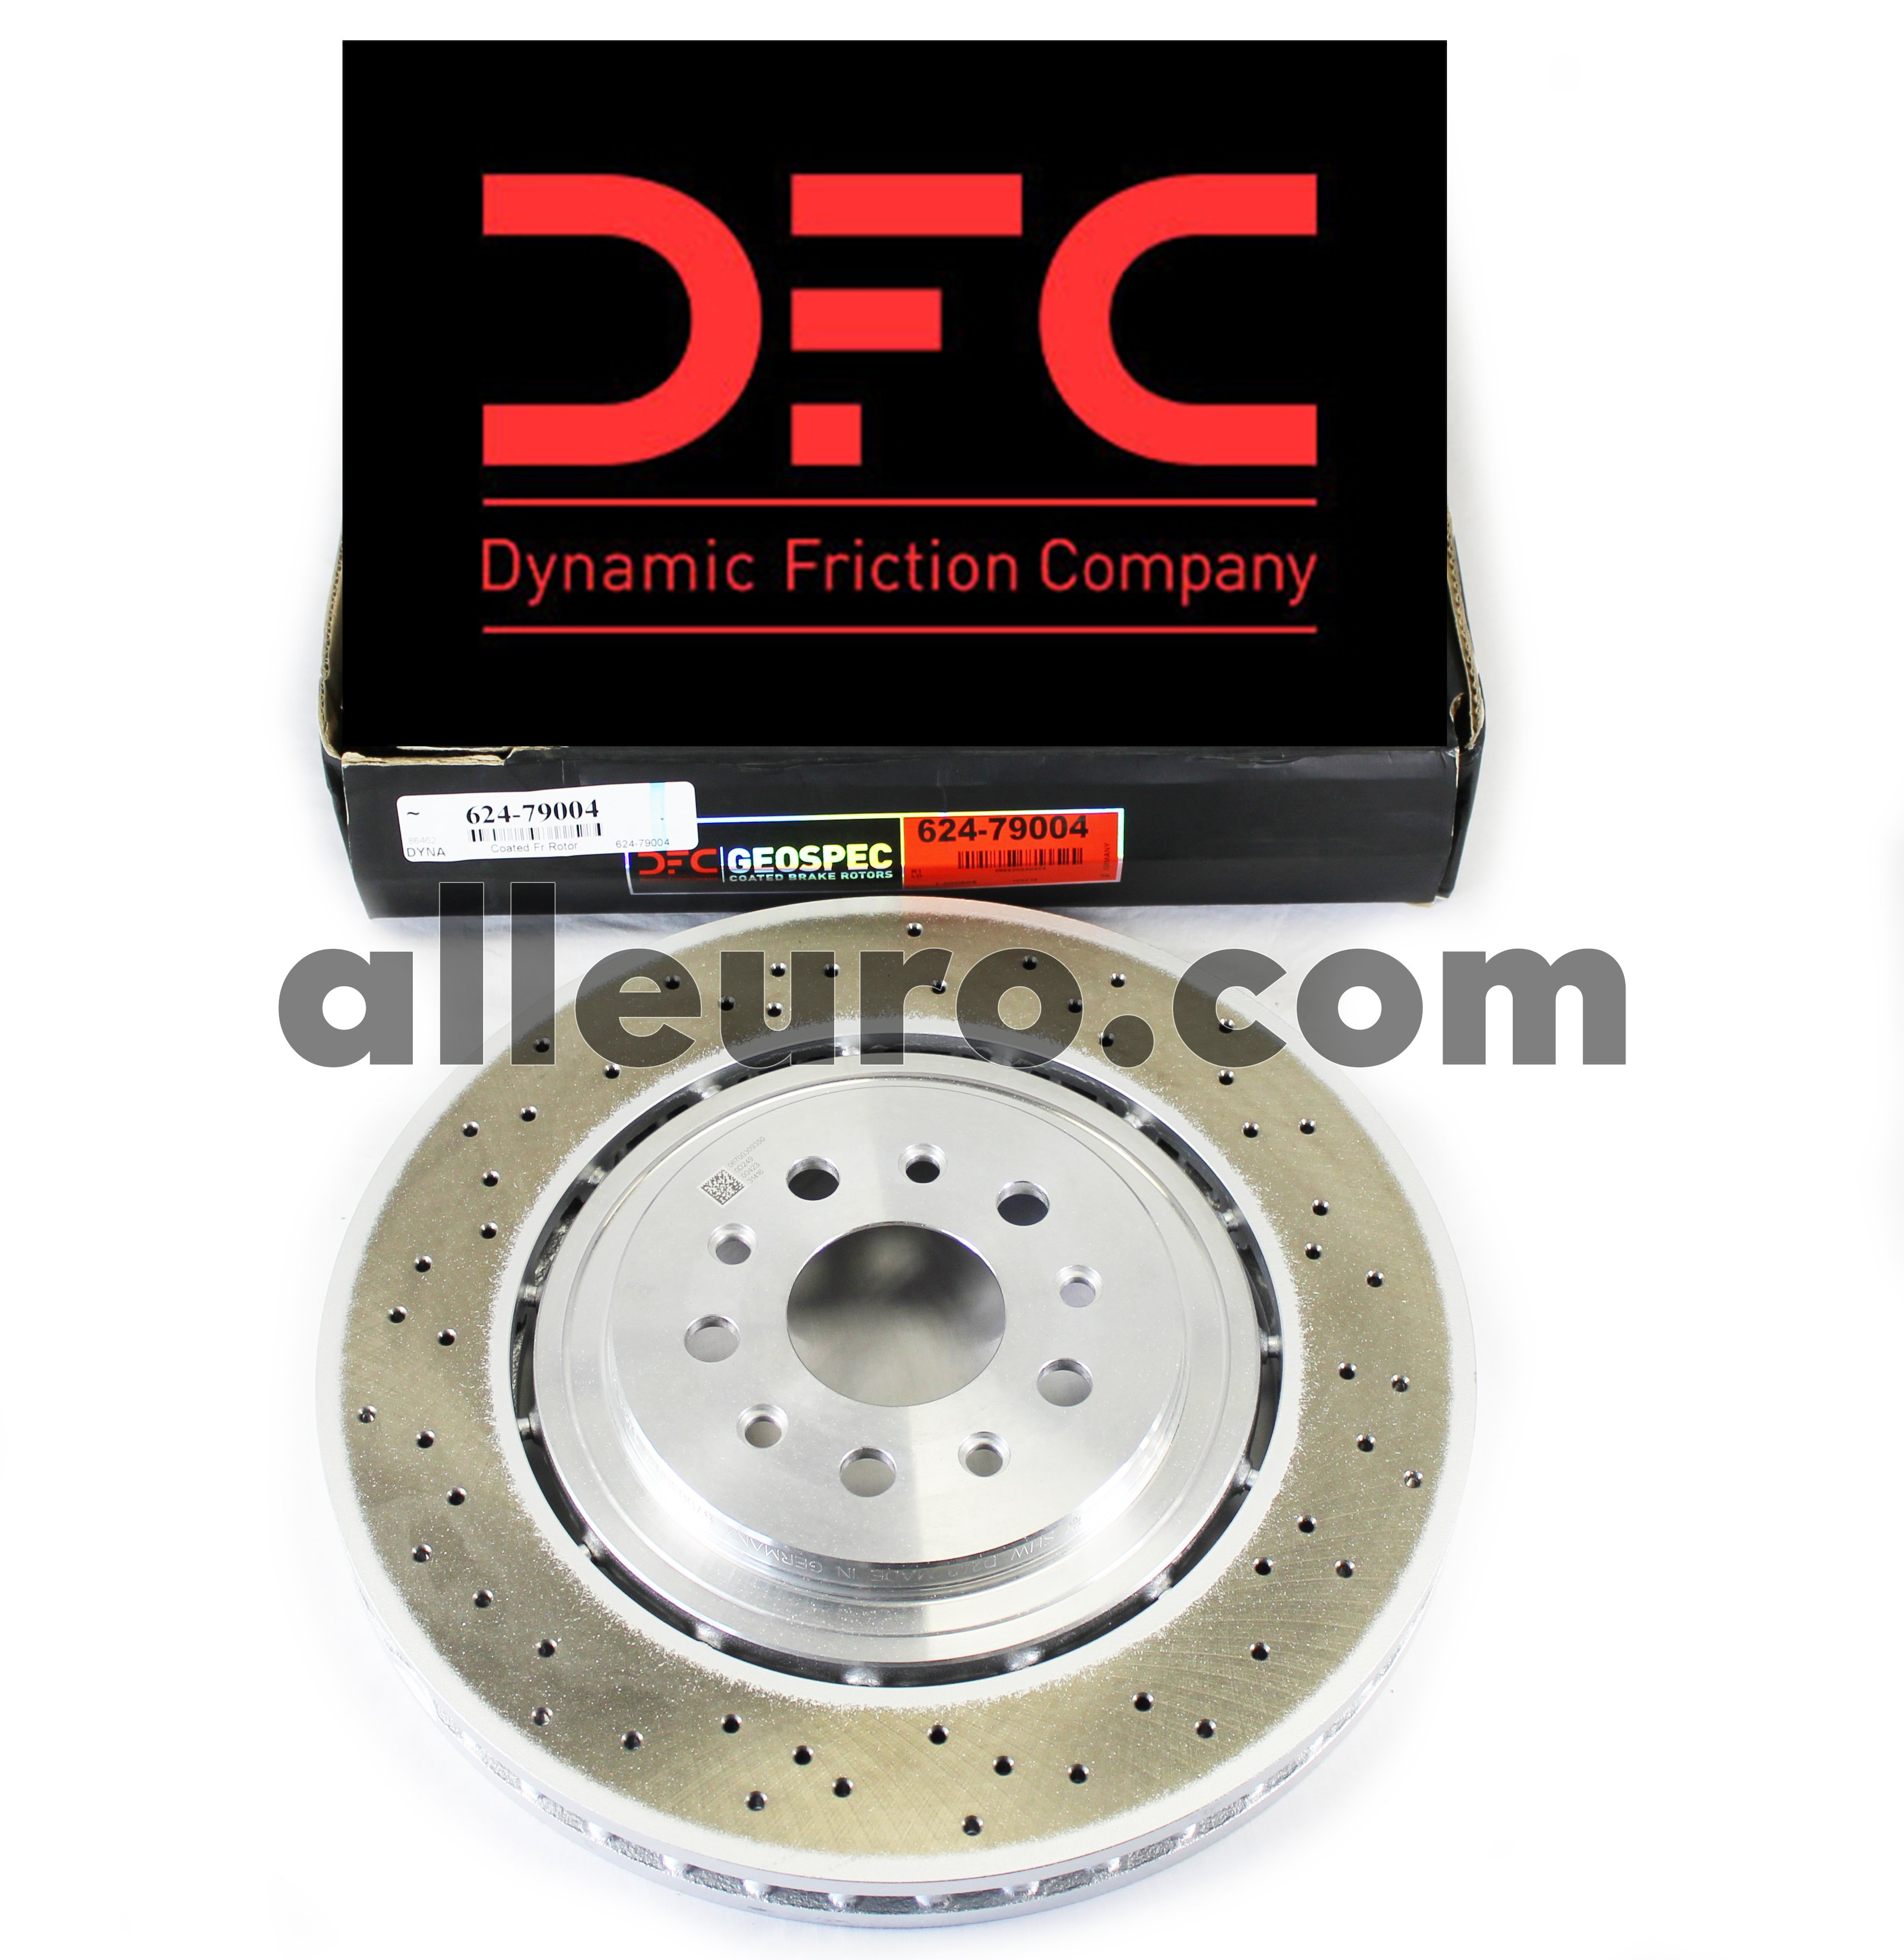 Dynamic Friction Front Disc Brake Rotor 624-79004